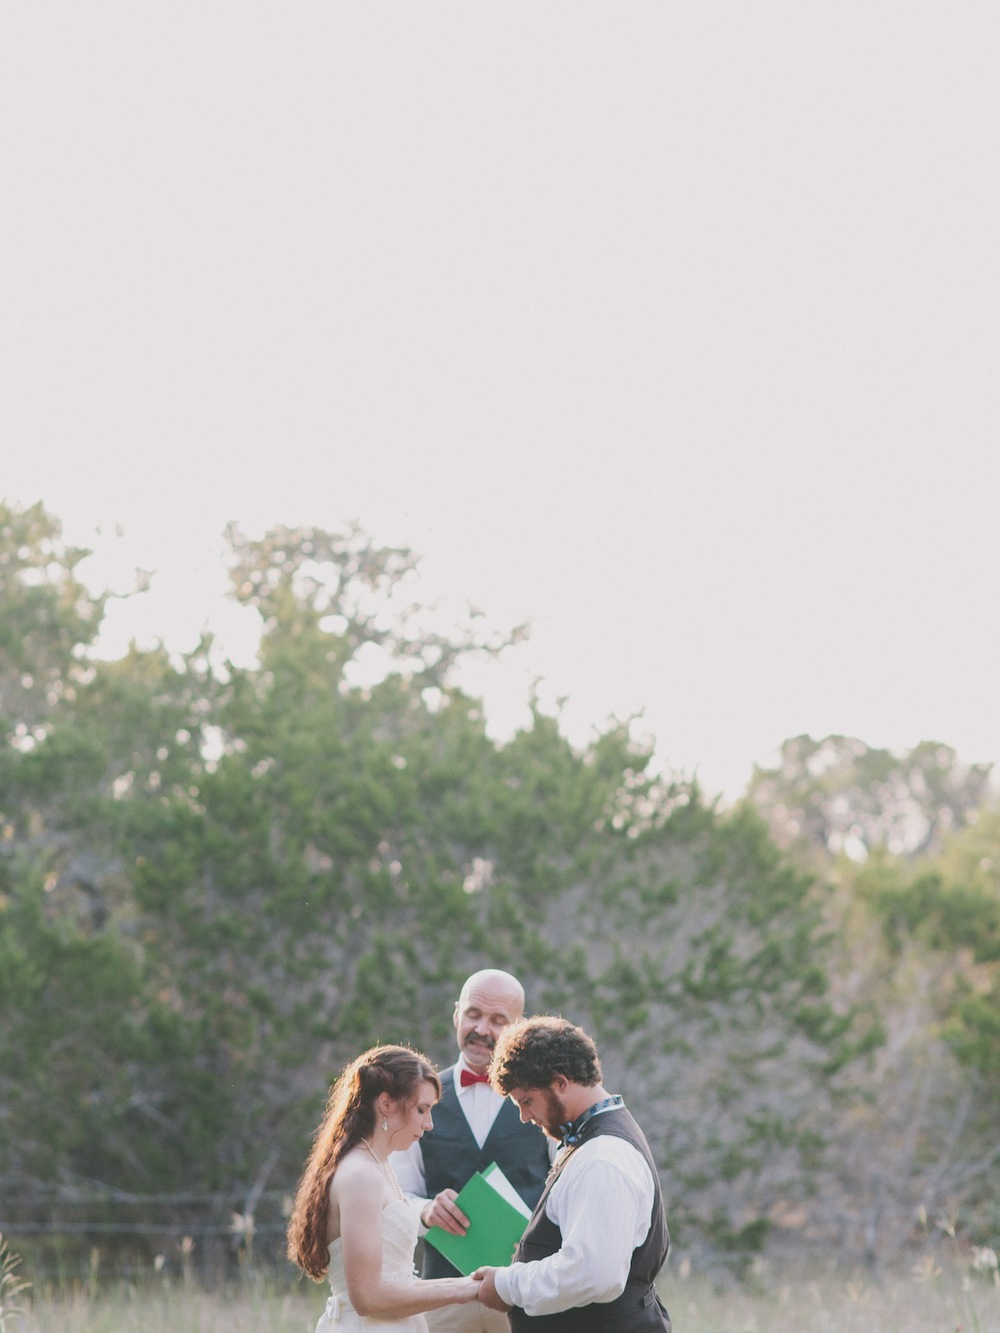 Austin-Wedding-Photographers-Photography-Wildfower-Barn-2.jpg